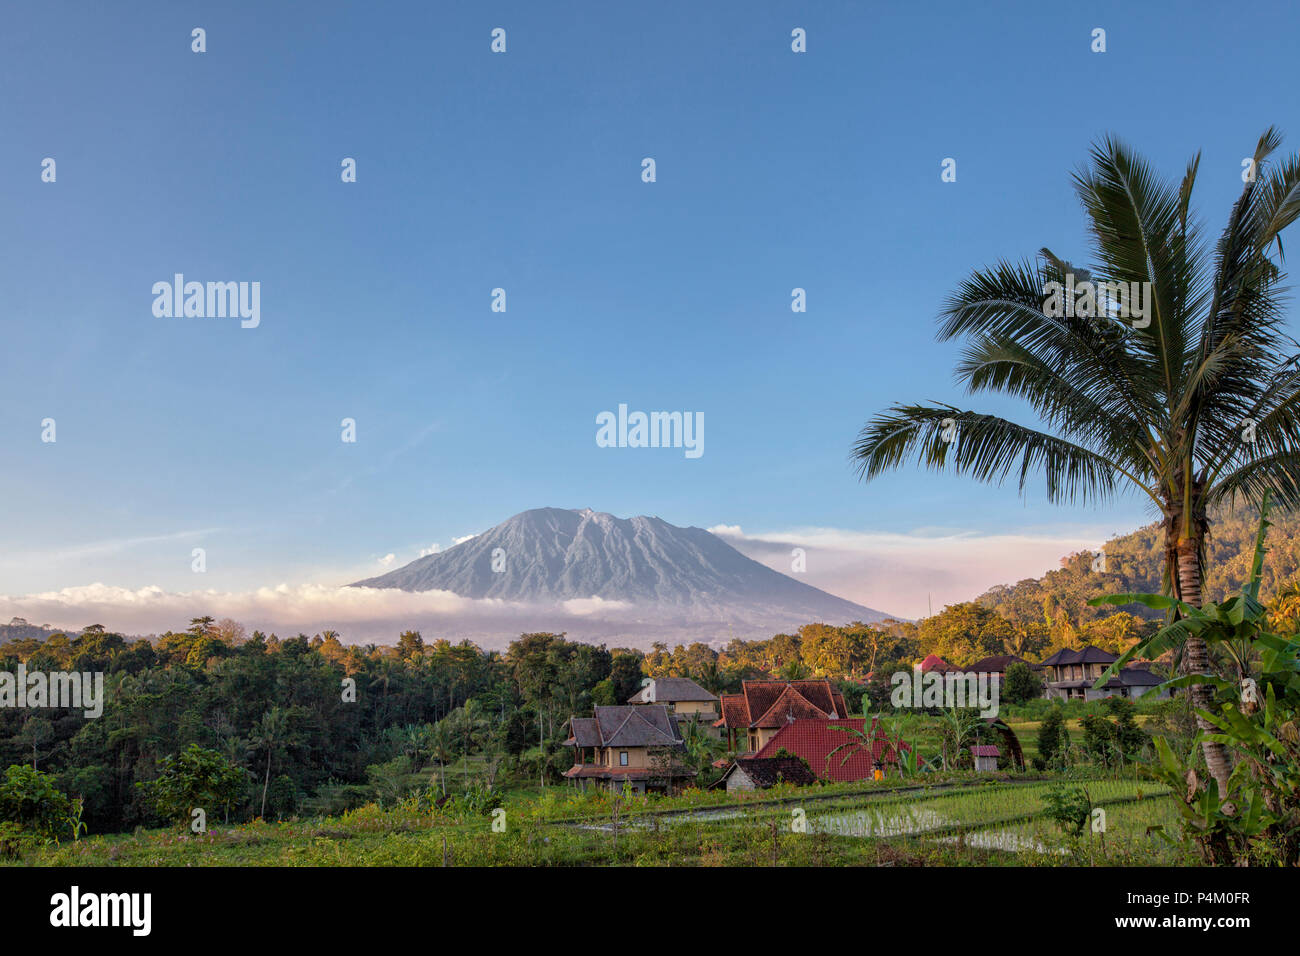 Rice terraces with Mount Agung in background, Bali, Indonesia - Stock Image